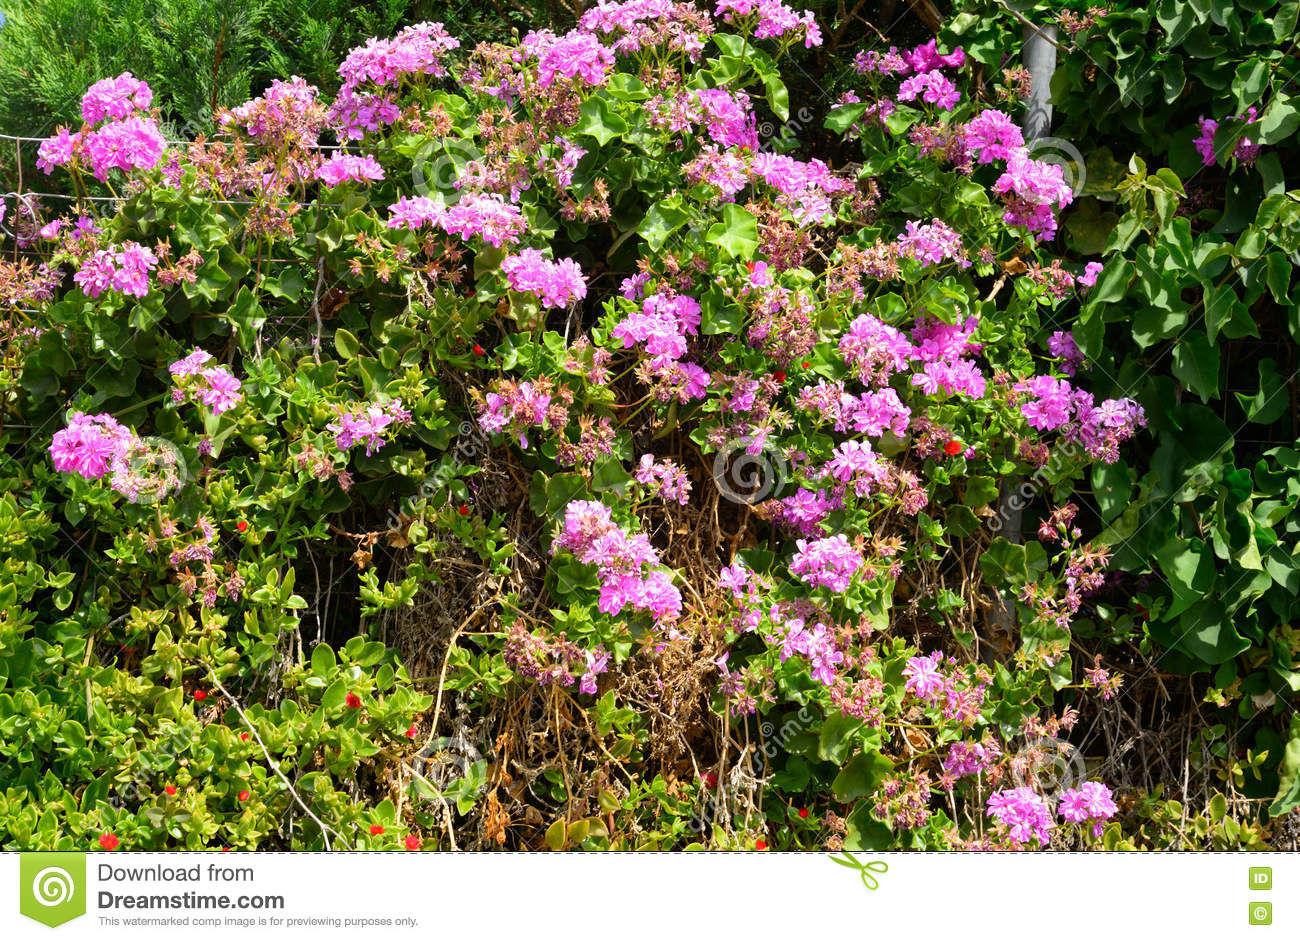 Bushes With Pink Flowers Stock Image Image Of Decorative 73435921